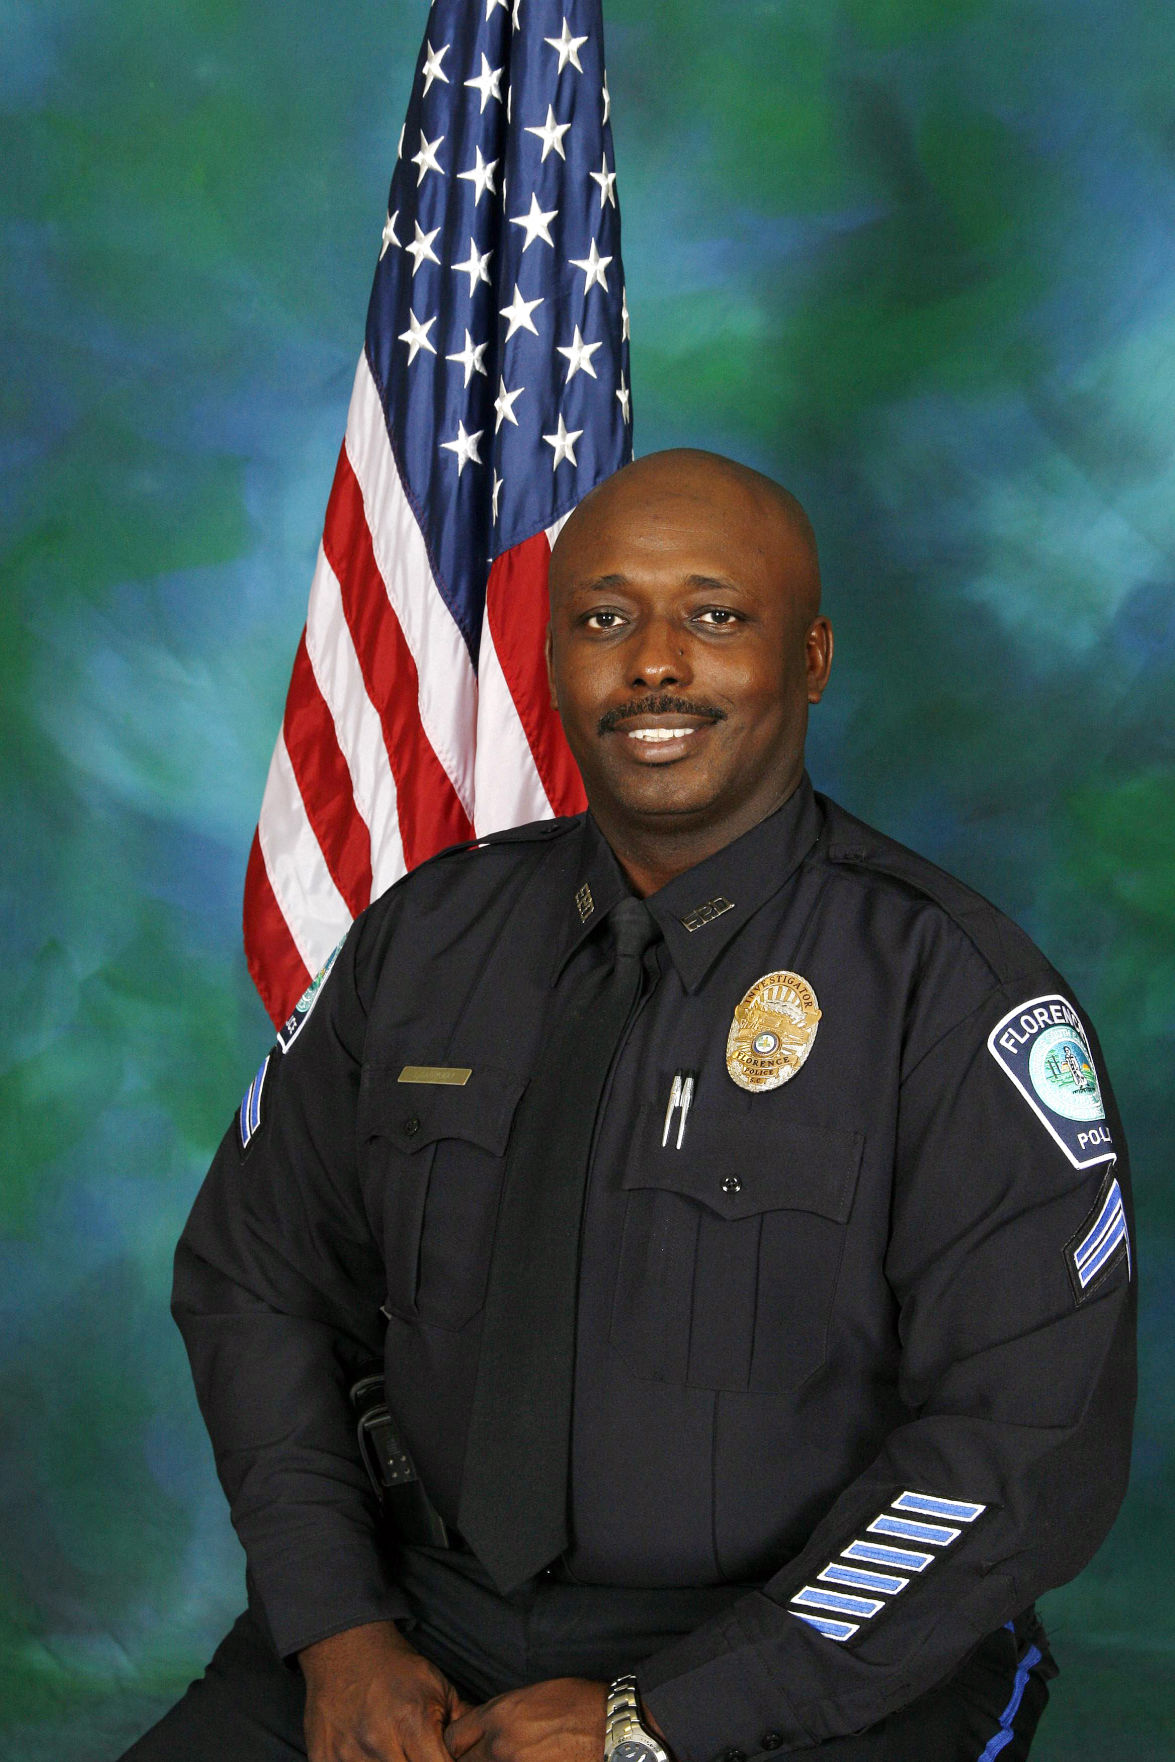 Florence Police Sgt. Terrence Carraway